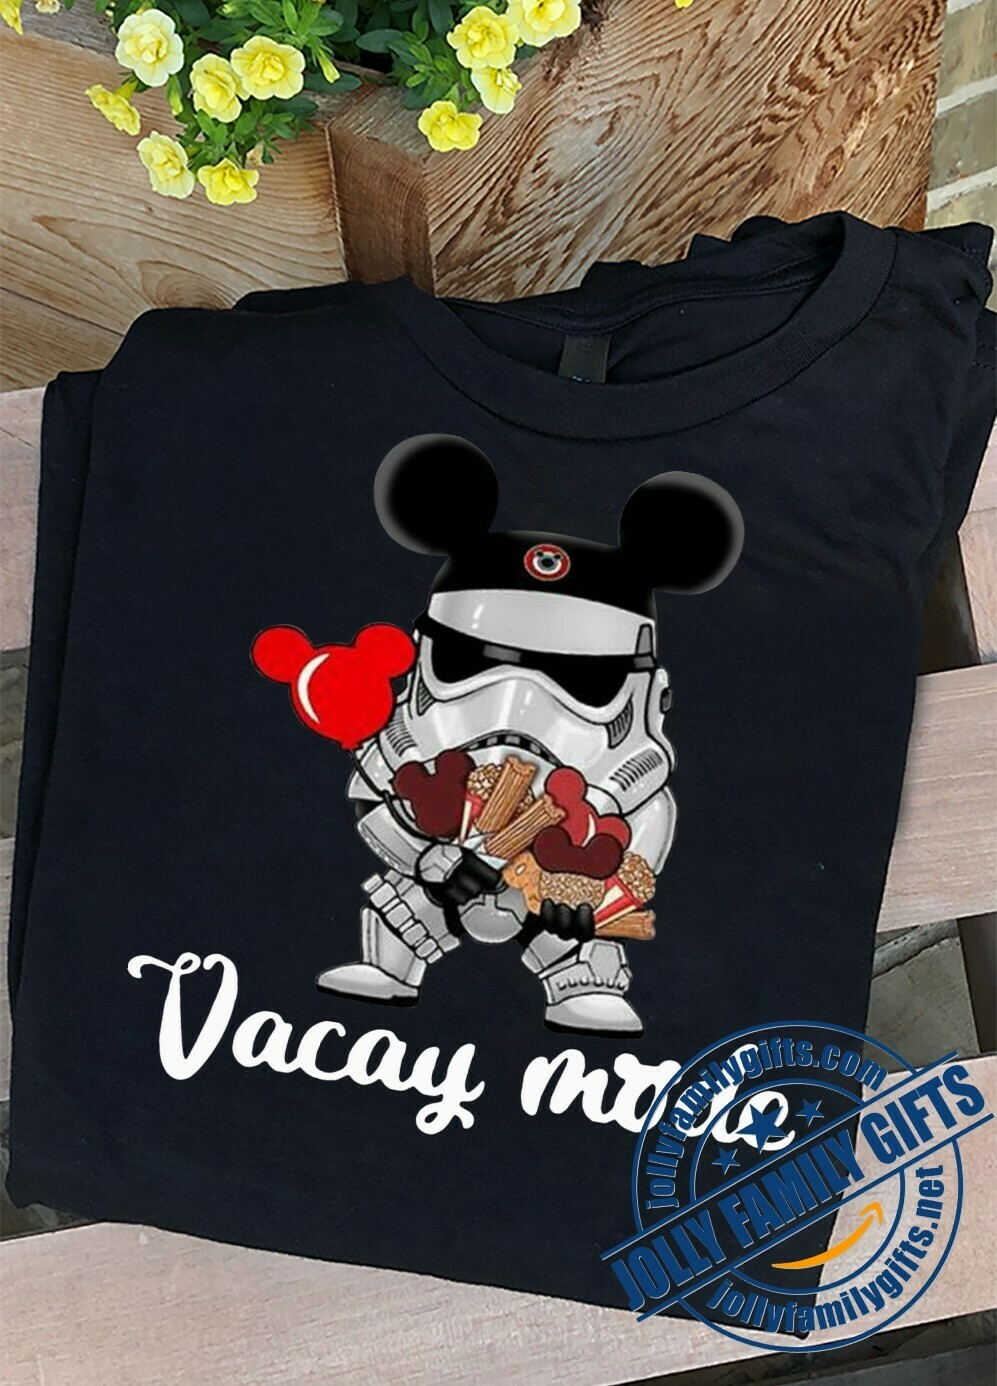 Stormtrooper Soldier Vacay Mode Disney Mickey Mouse Ears Star Wars The Force Awakens Walt Disney Family Vacation Go to Disney World  Unisex T-Shirt Hoodie Sweatshirt Sweater Plus Size for Ladies Women